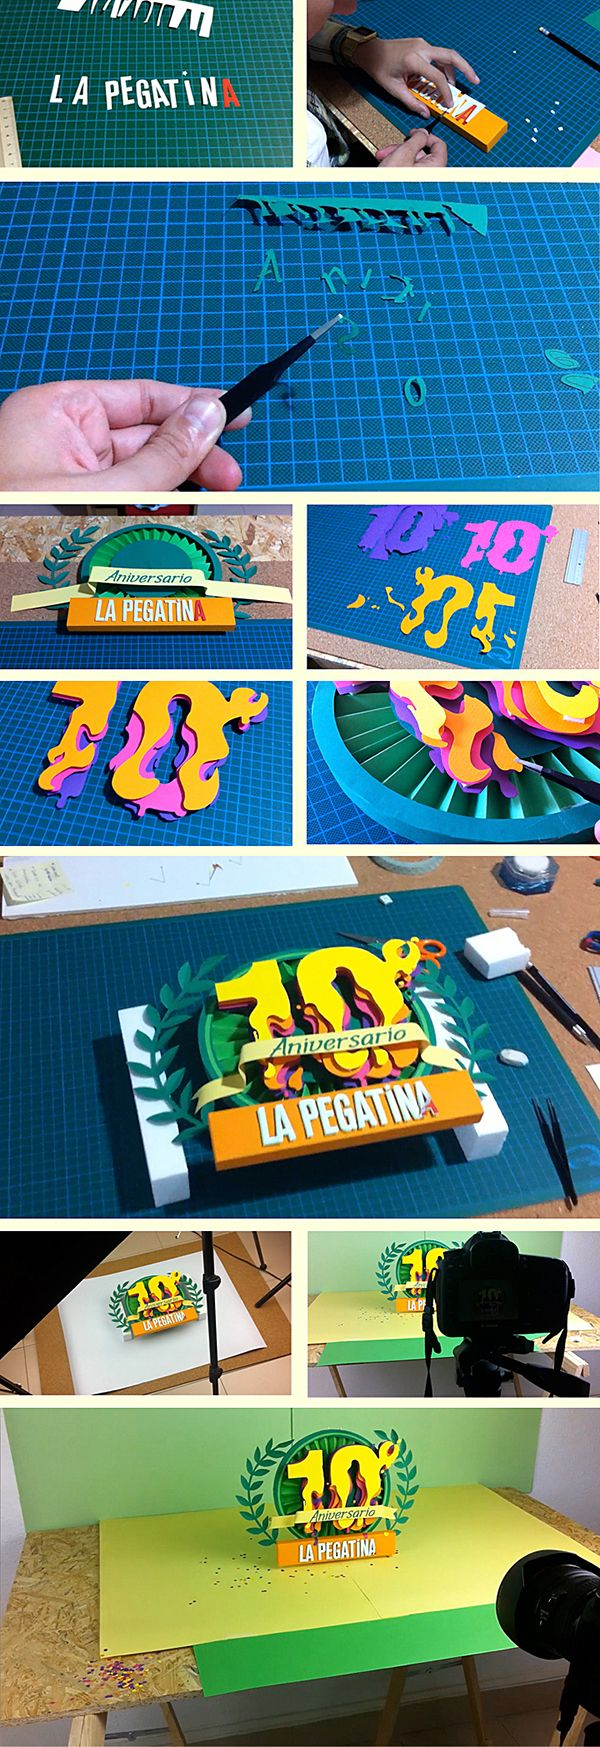 """This year the spanish rumba fusion band """"La Pegatina"""" are celebrating their 10th aniversary, I was commisioned to created a logo on paper for one of thet-shirts for their aniversary."""